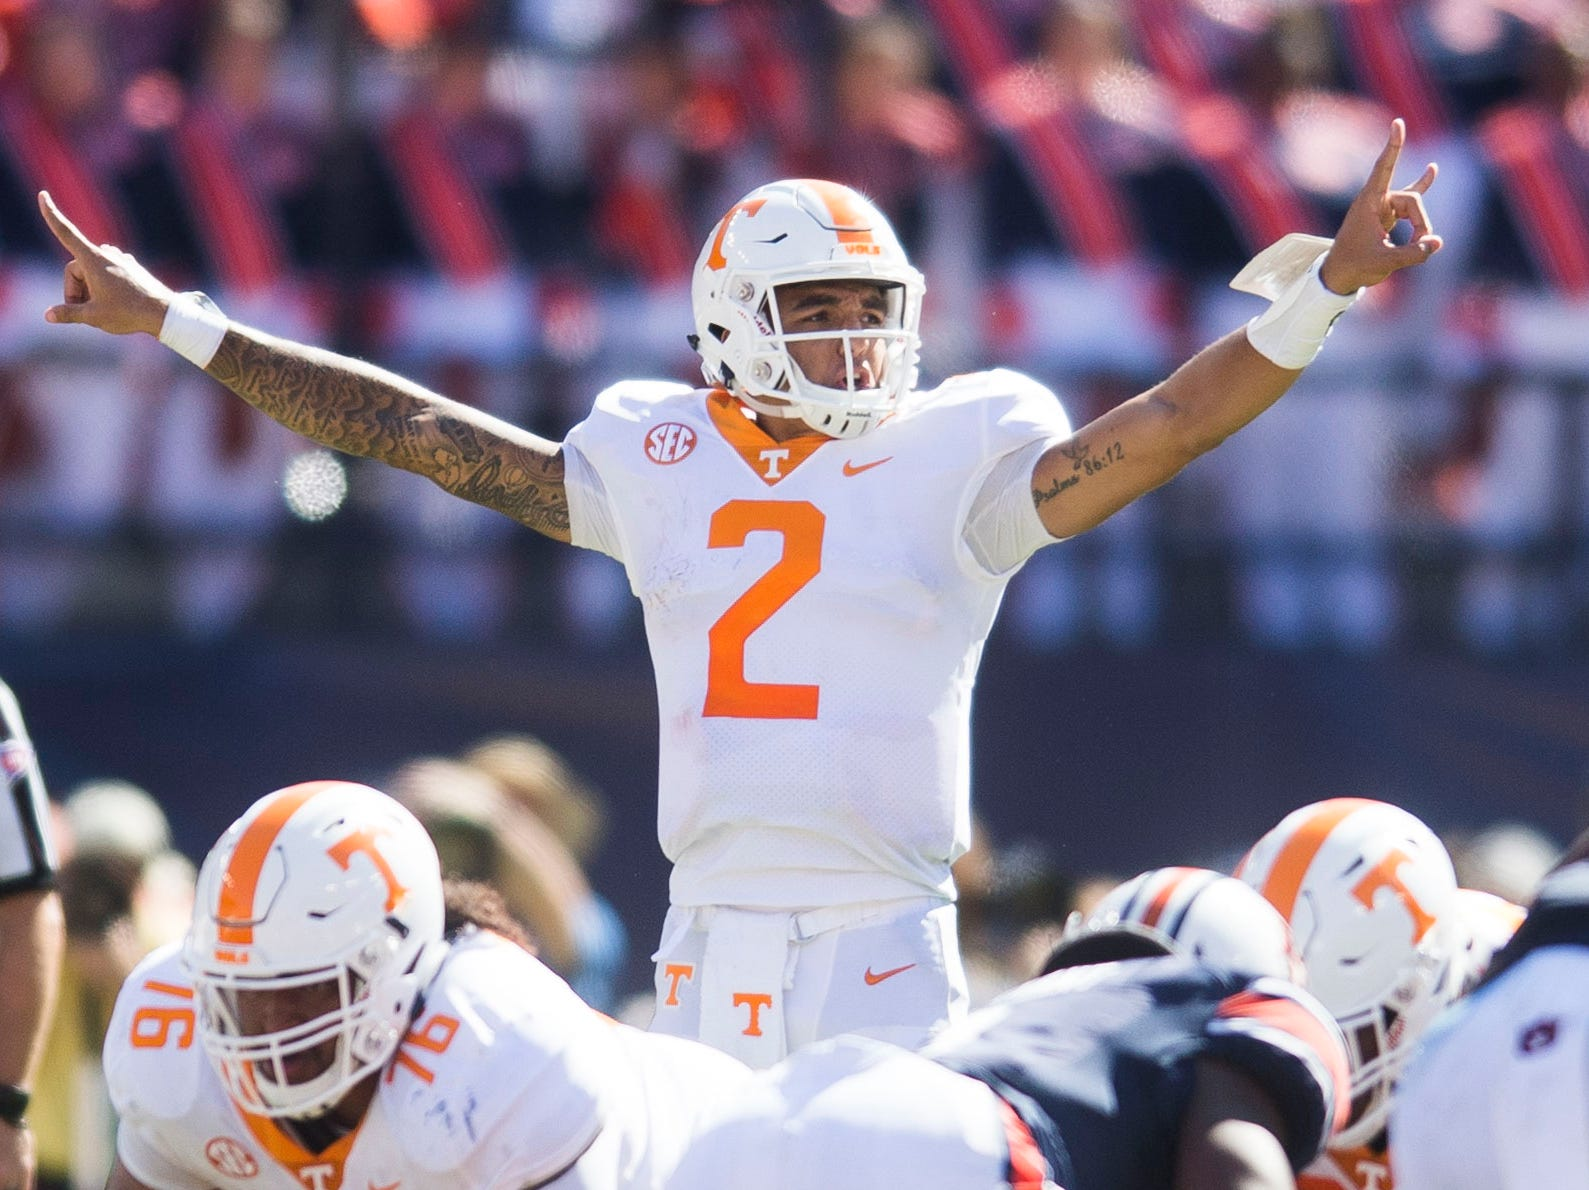 Tennessee quarterback Jarrett Guarantano (2) calls a play during a game between Tennessee and Auburn at Jordan-Hare Stadium in Auburn, Ala. Saturday, Oct. 13, 2018. Tennessee defeated Auburn 30-24.